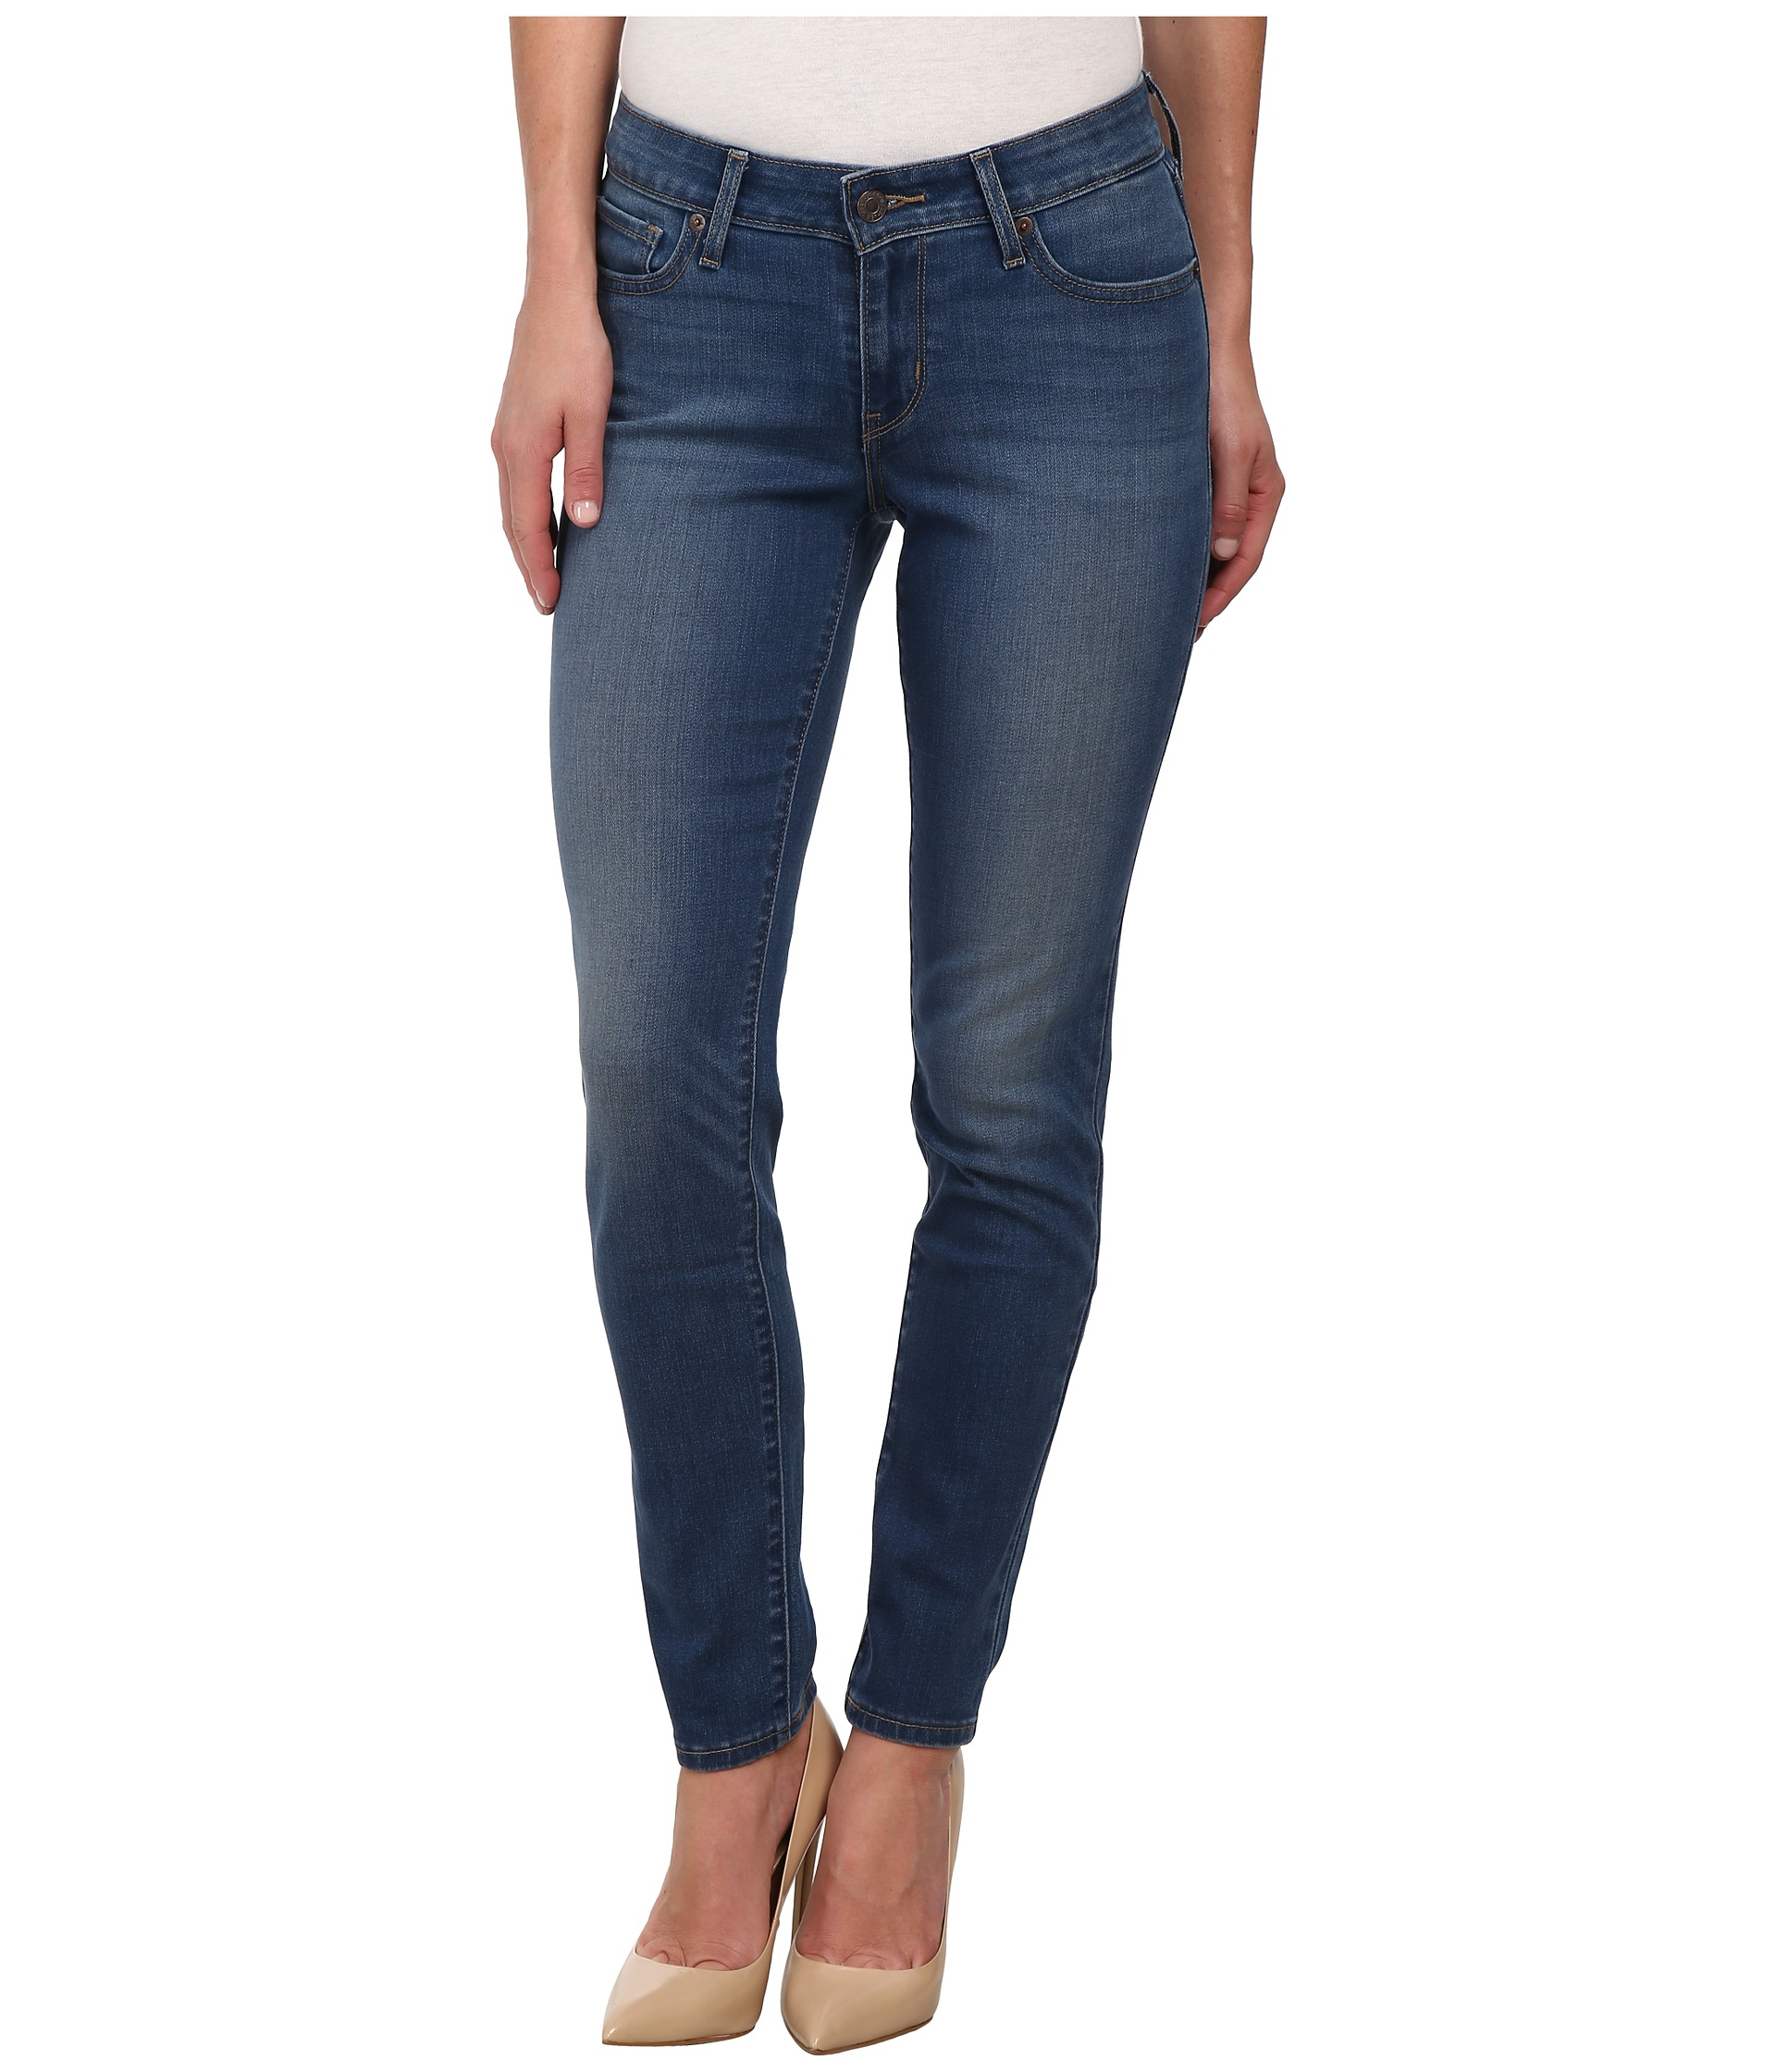 THE FIT: High-rise, high stretch denim with a super skinny leg and slim fit through thigh and leg USERS SAID: